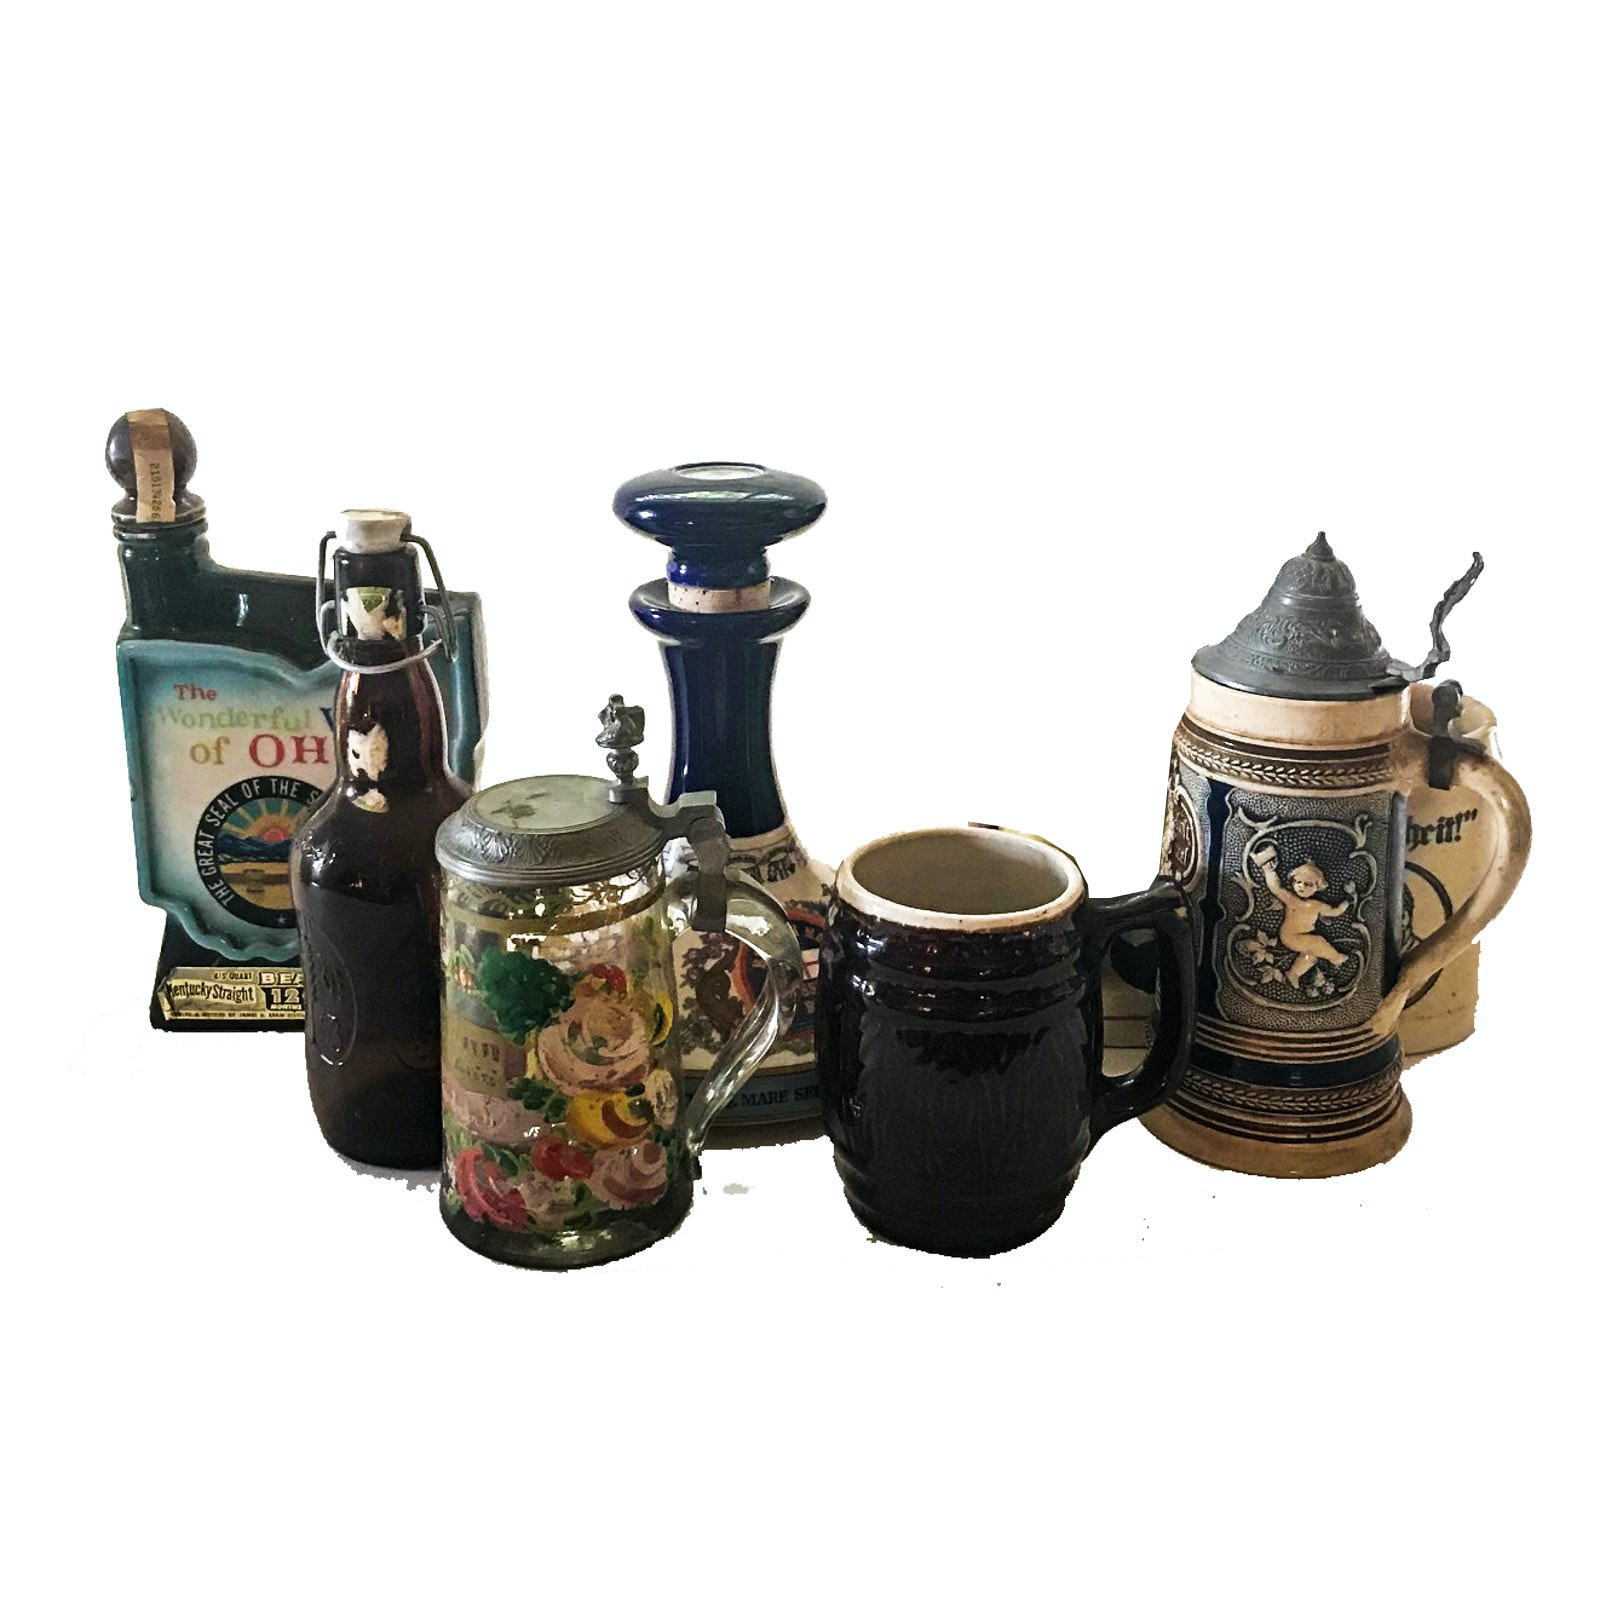 Decorative Decanters and Steins including Wade